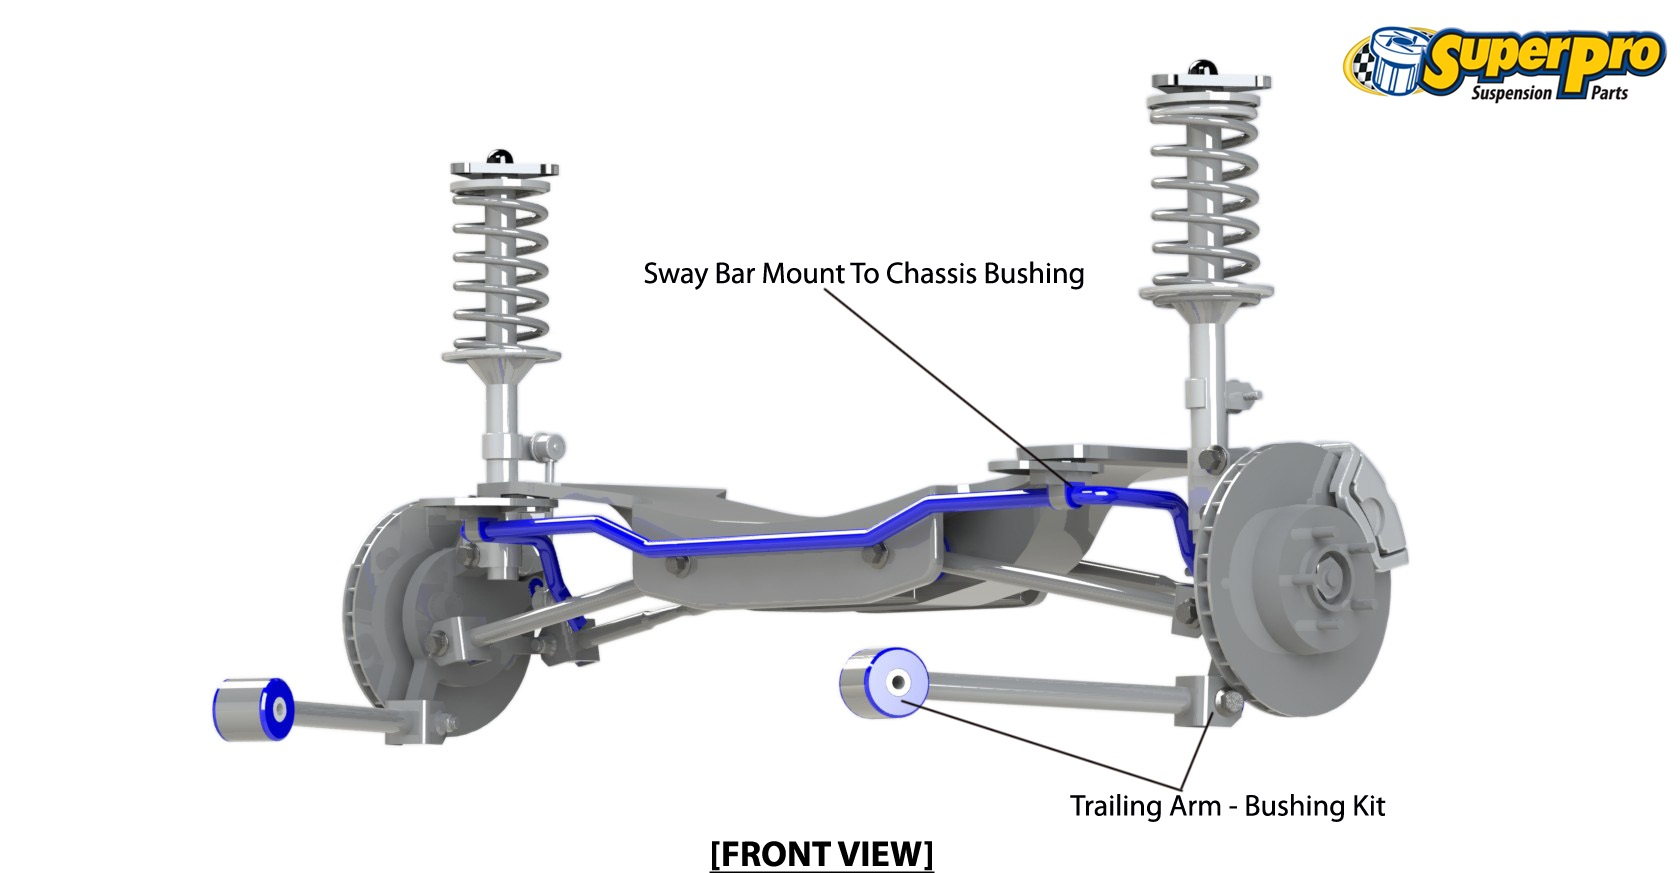 2000 Vw Beetle Suspension Diagram Great Installation Of Wiring Hyundai Accent Lc Superpro Parts And Poly Bushings For 2011 On Rh Com Au Swing Axle